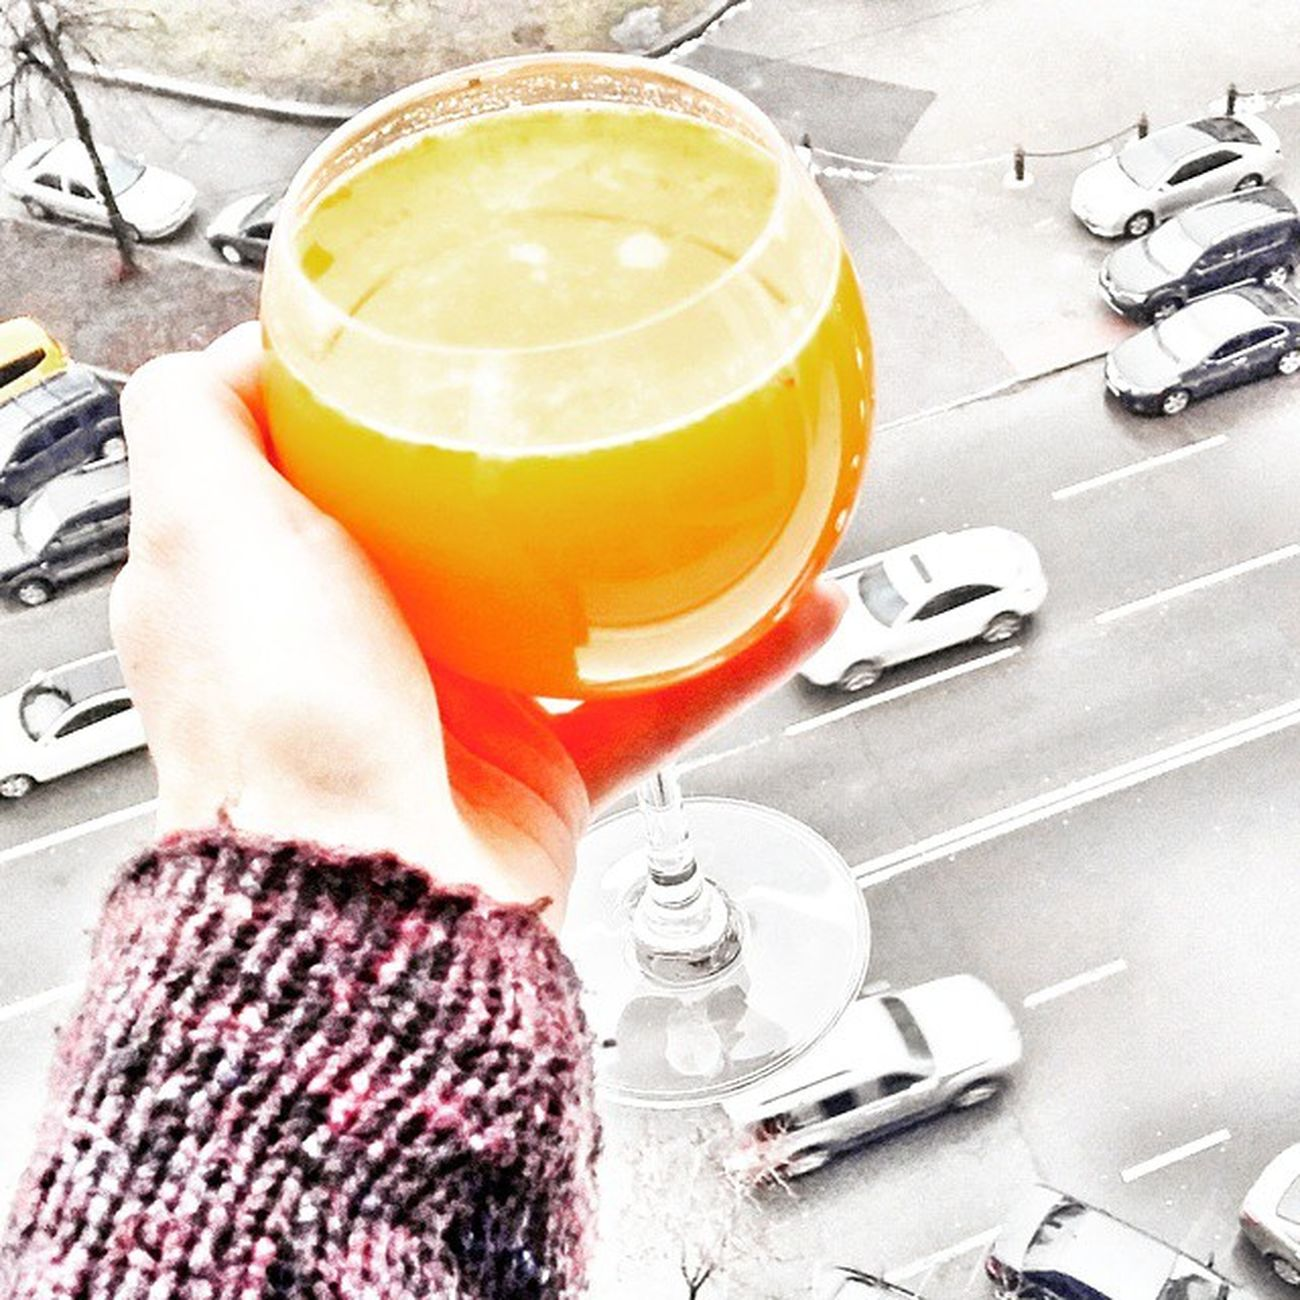 Kiev. A bird's eye view🐦〰 Or a juice's eye view😉🍊🍸 Kiev Kievfood Kievwinter Kievgram Orange Orangejuice Mandarin Mandarinjuice Birdseyeview Juiceseyeview Instaphoto Киев киевскаязима апельсиновыйсок апельсины мандарины